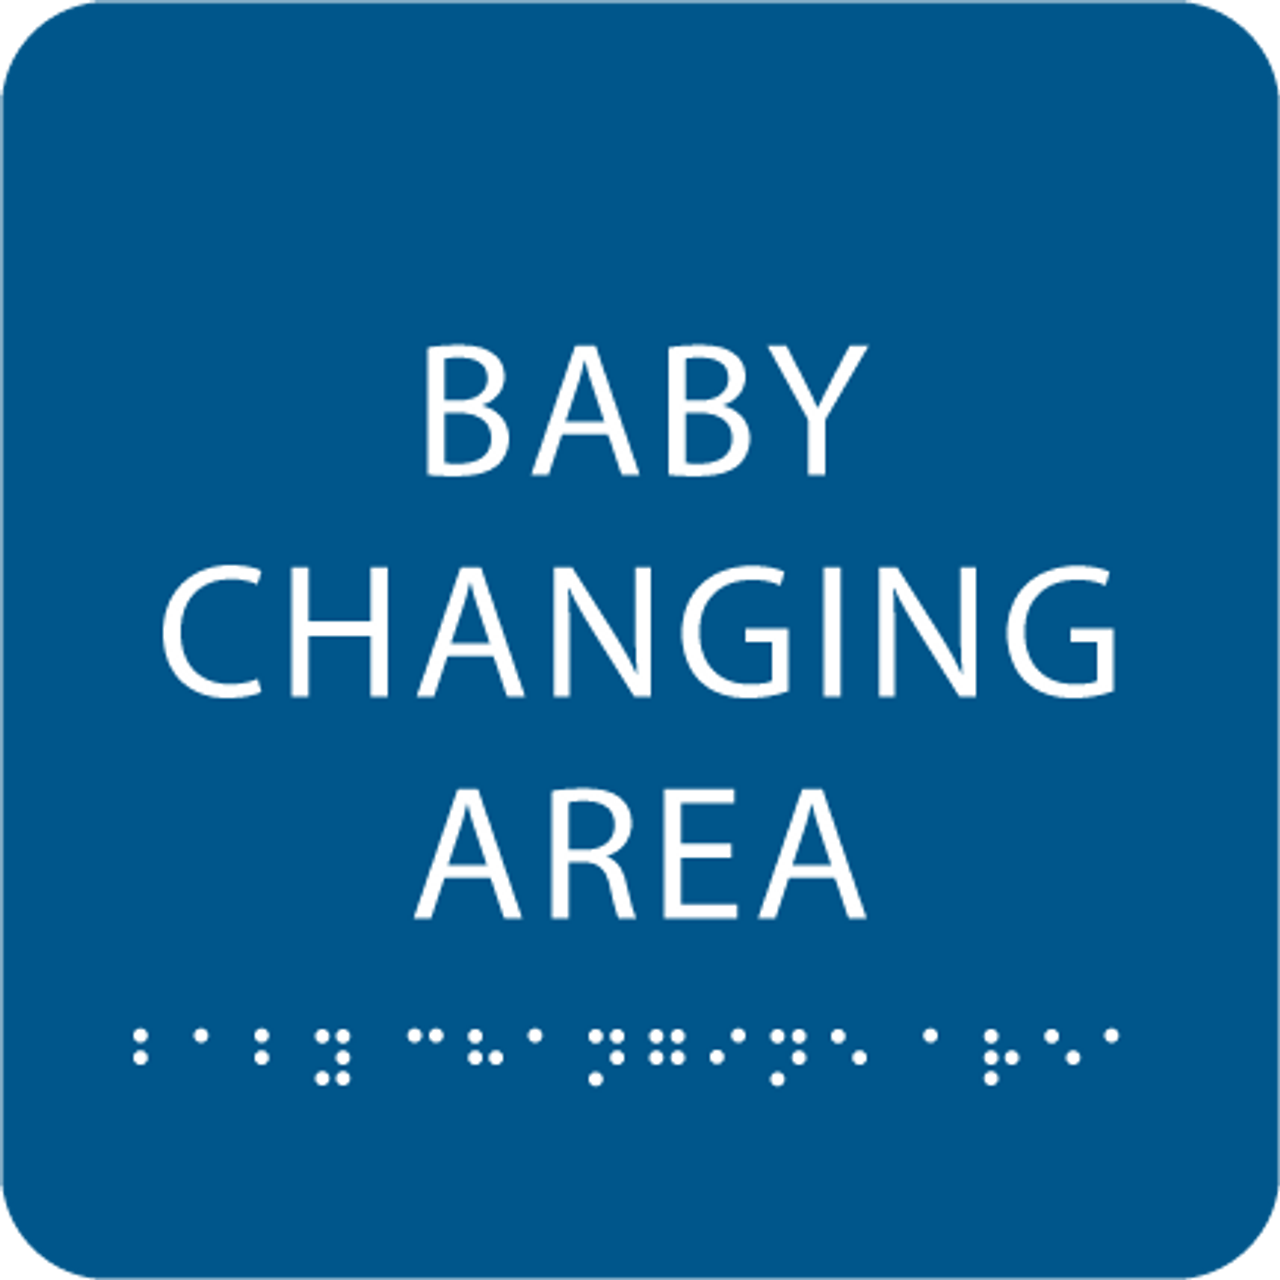 Royal Blue Baby Changing Area ADA Sign